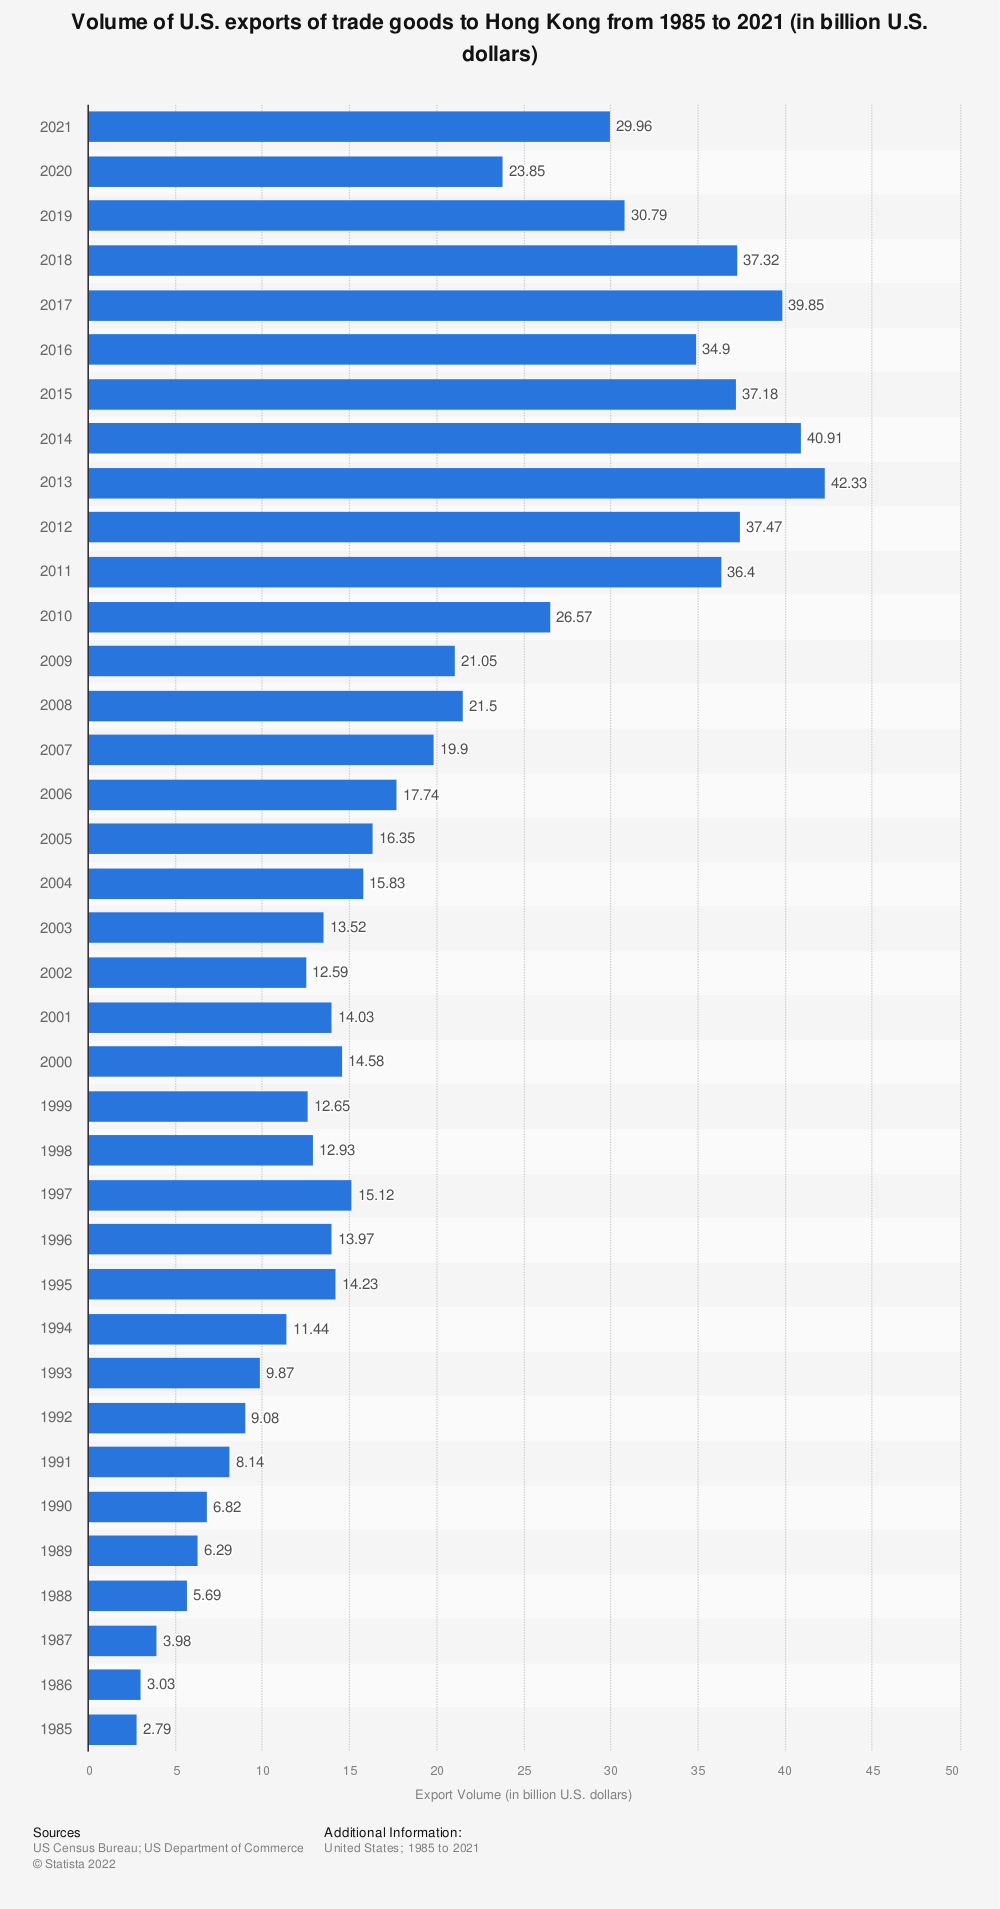 Statistic: Volume of U.S. exports of trade goods to Hong Kong from 1985 to 2018 (in billion U.S. dollars) | Statista